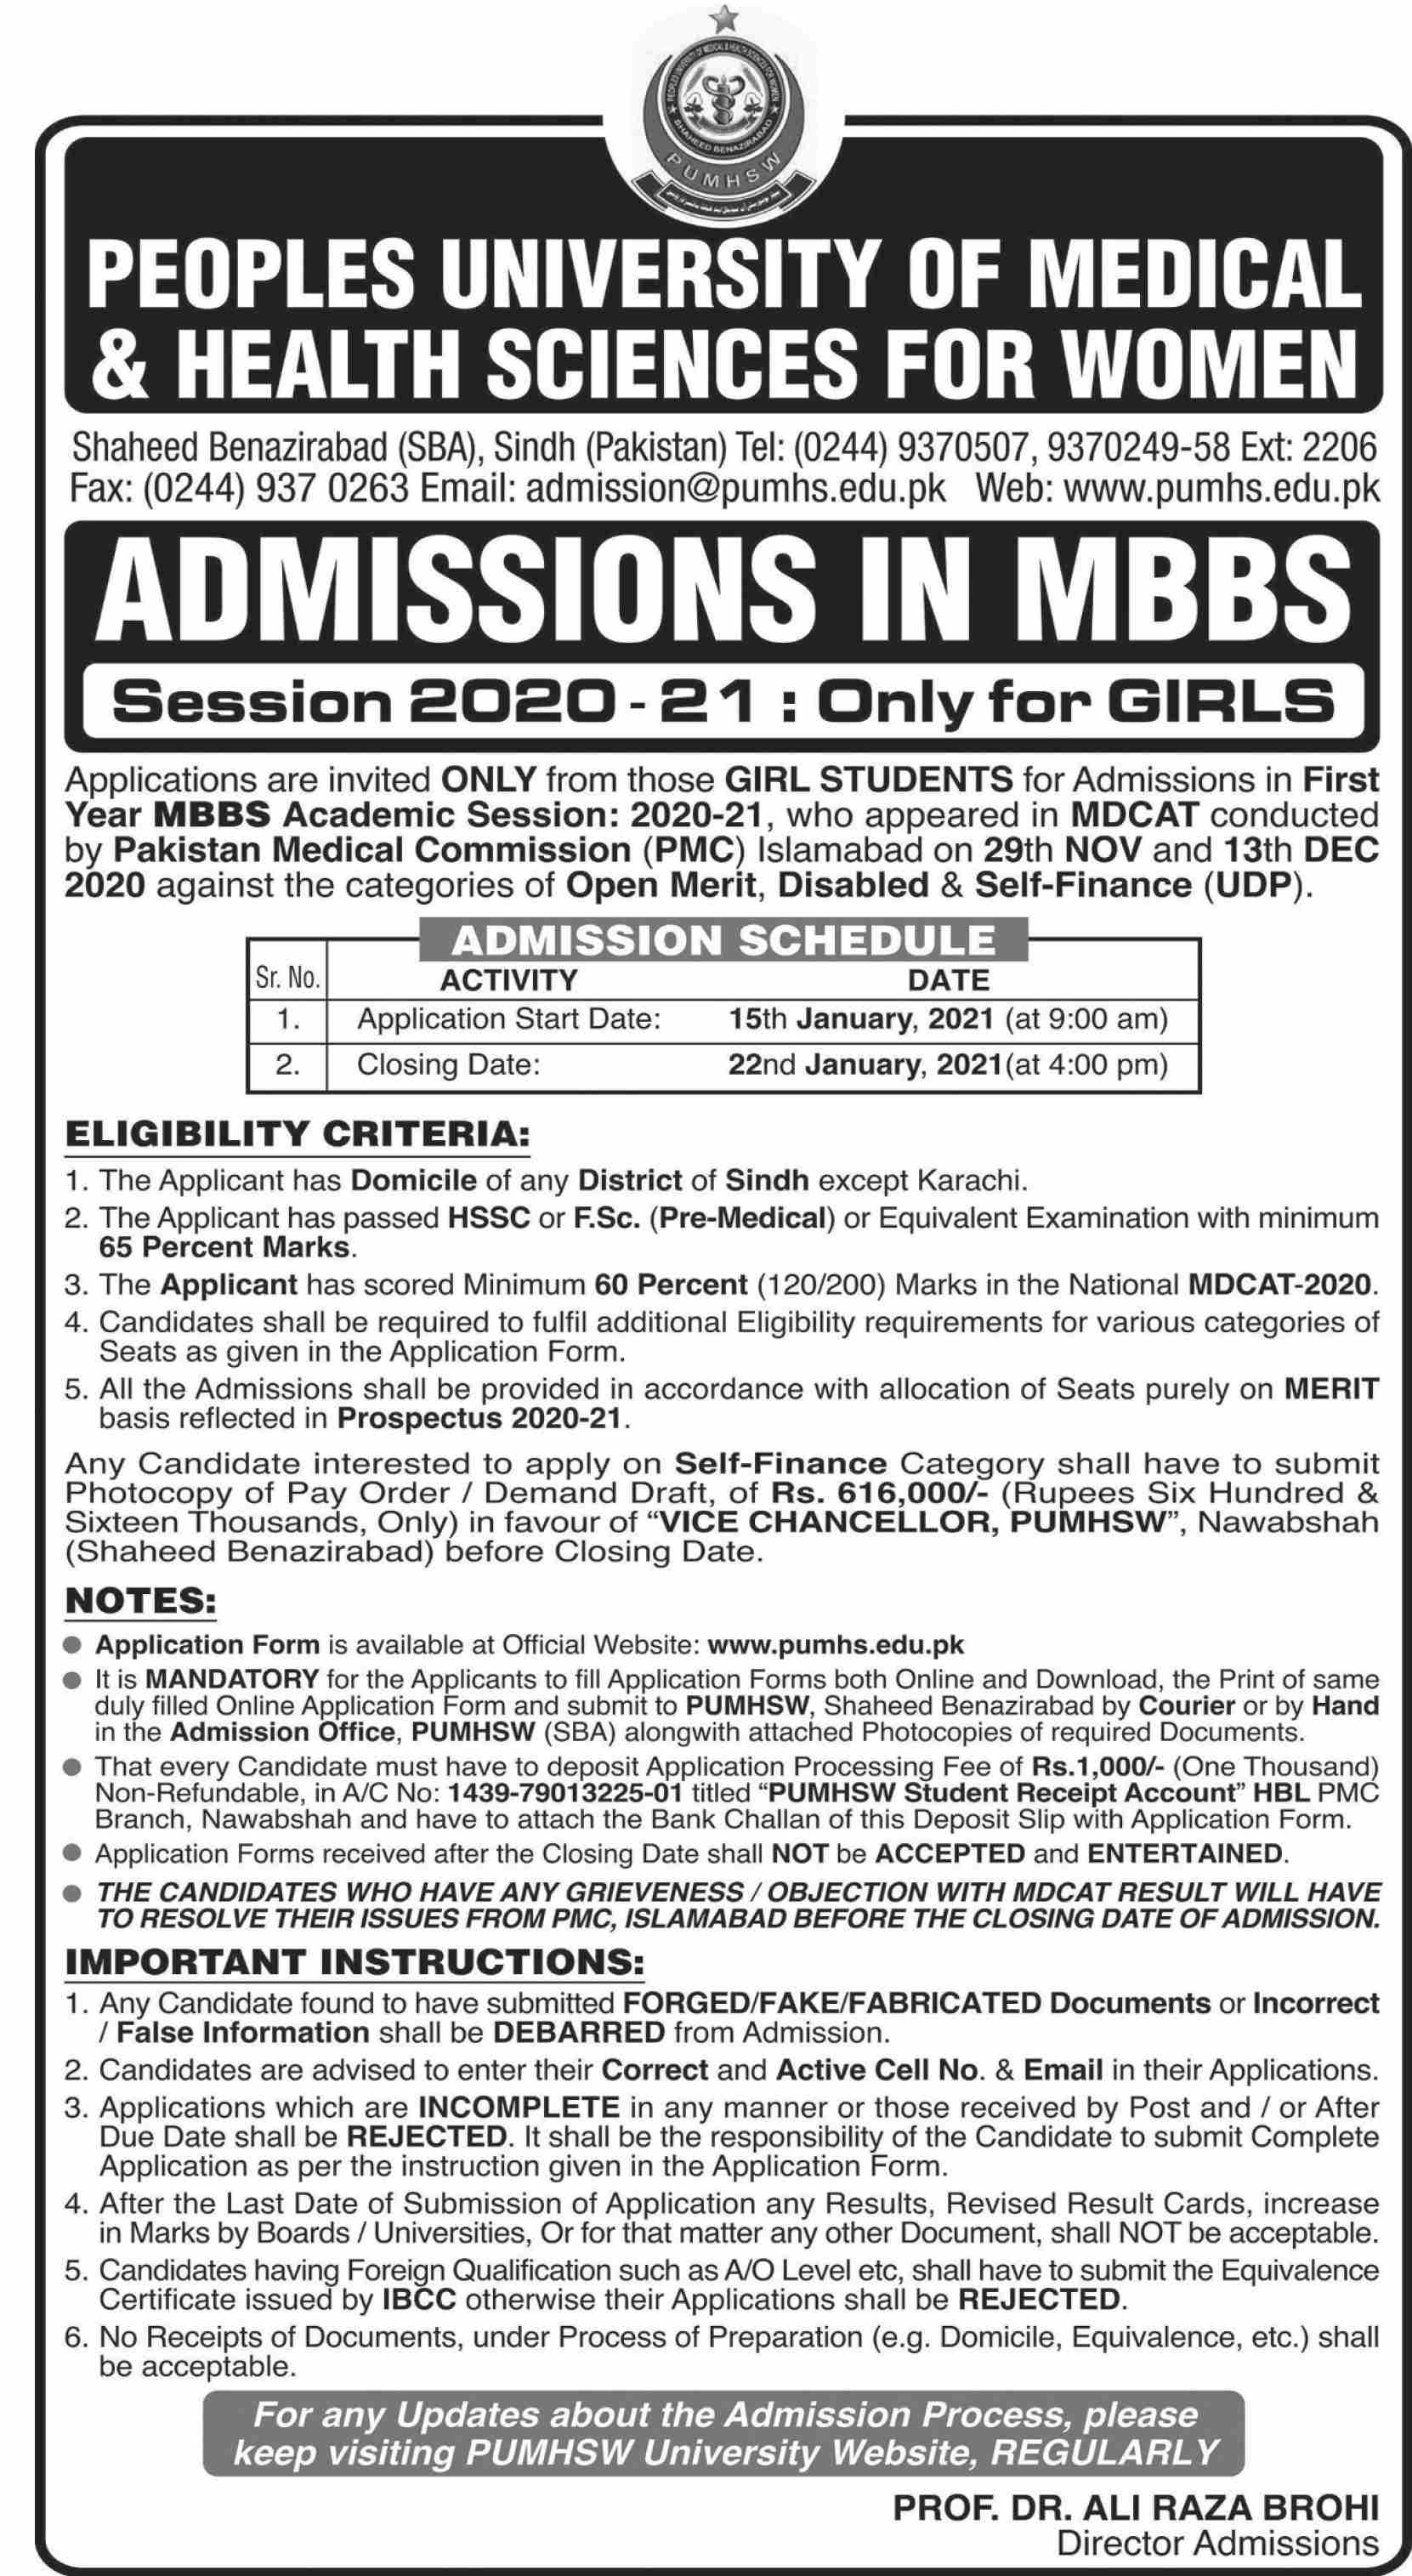 Peoples University Of Medical & Health Sciences For Women Shaheed Benazirabad Admissions